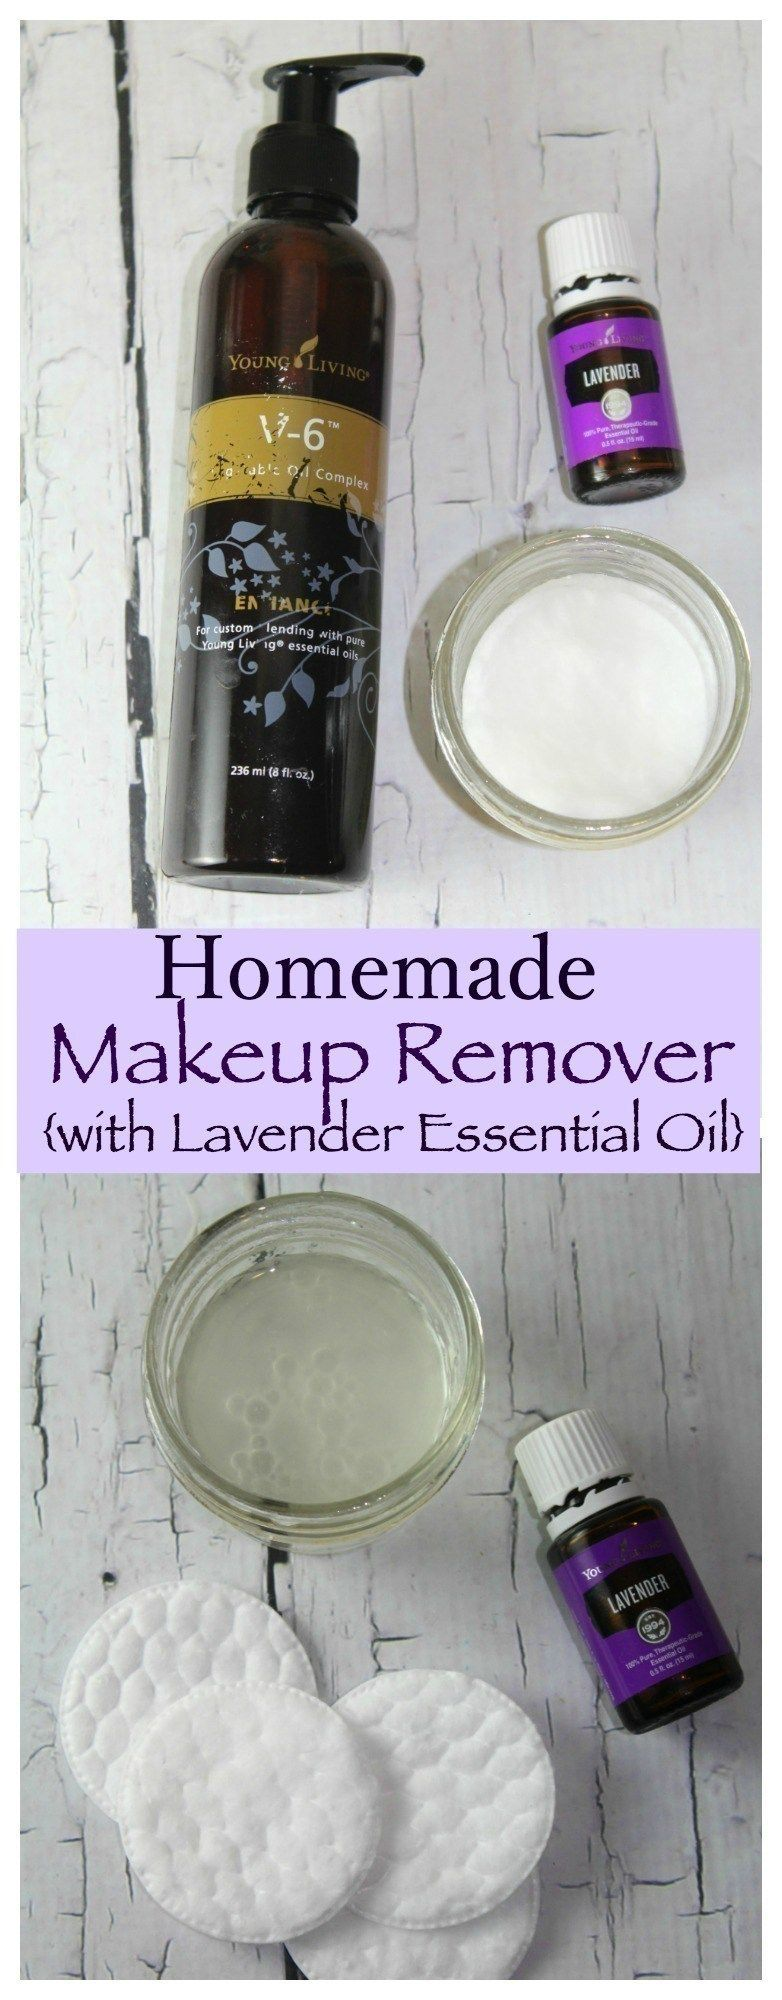 Makeup Remover with Lavender Essential Oil makeup remover